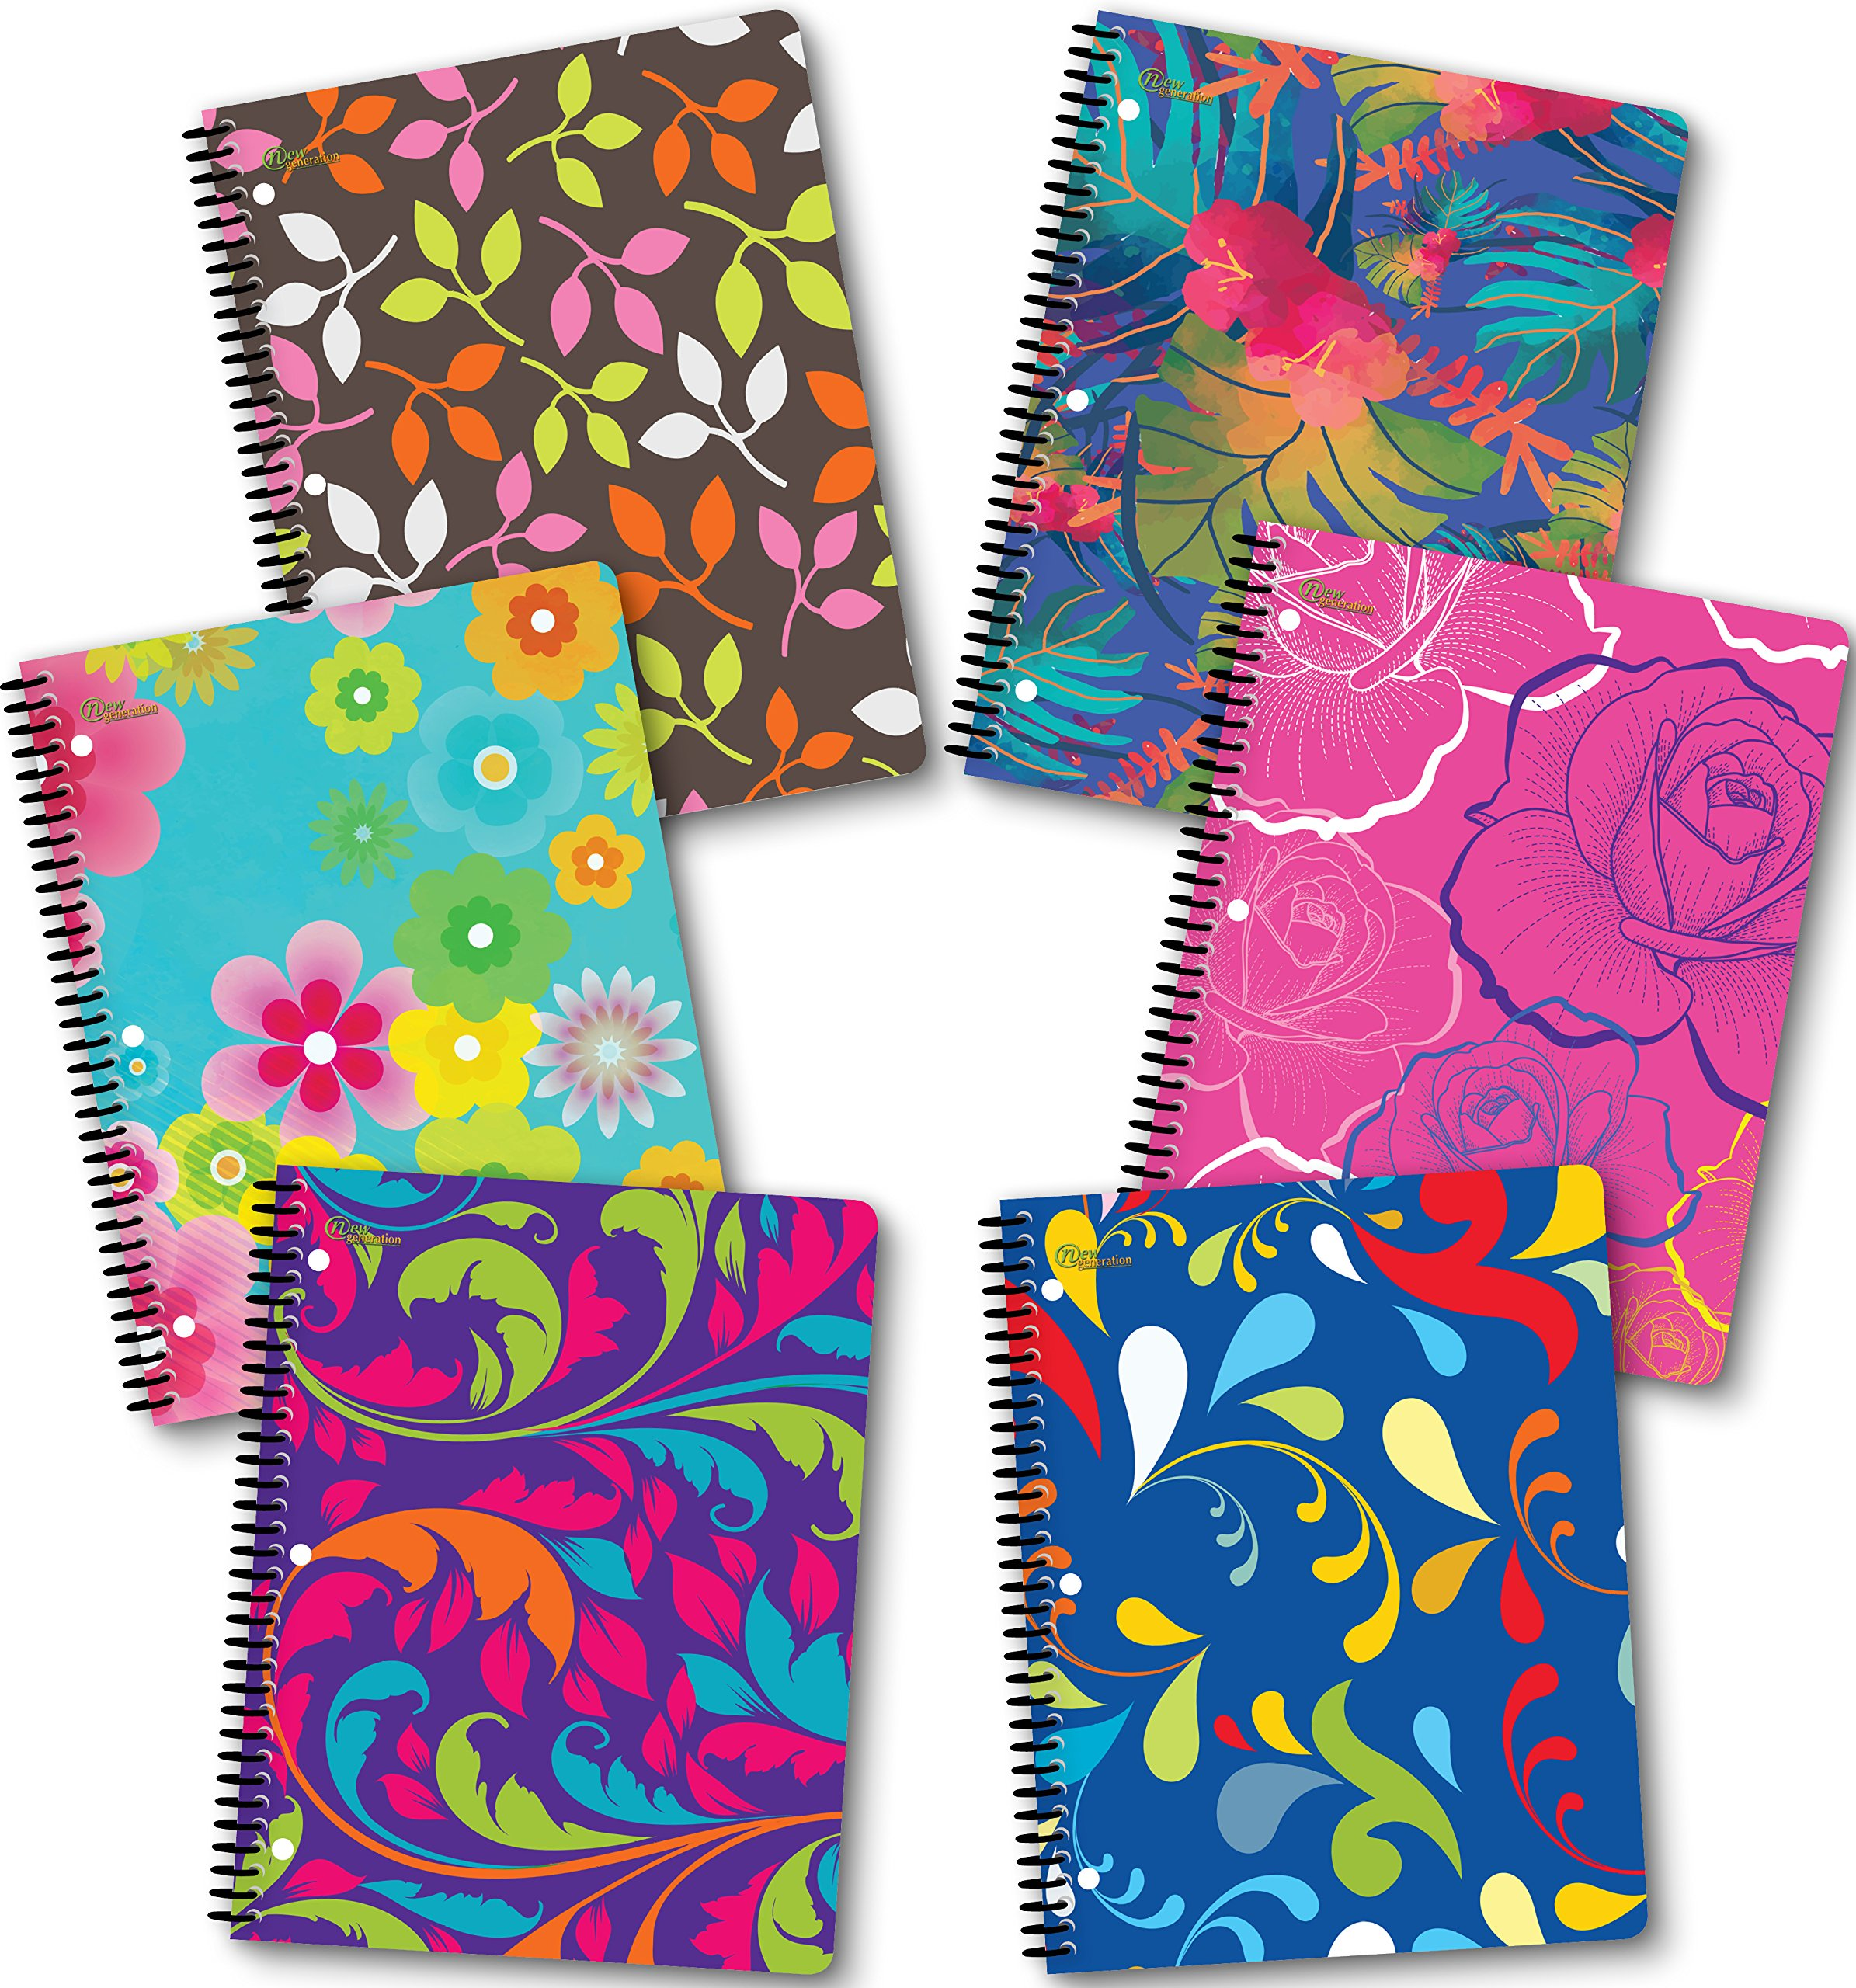 Spiral Notebook 70 Sheets 8'' x 10.5'' wirebound 1 Subject Spiral Notebooks, (6 Pack Spiral Notebook Wide Ruled) Floral by New Generation